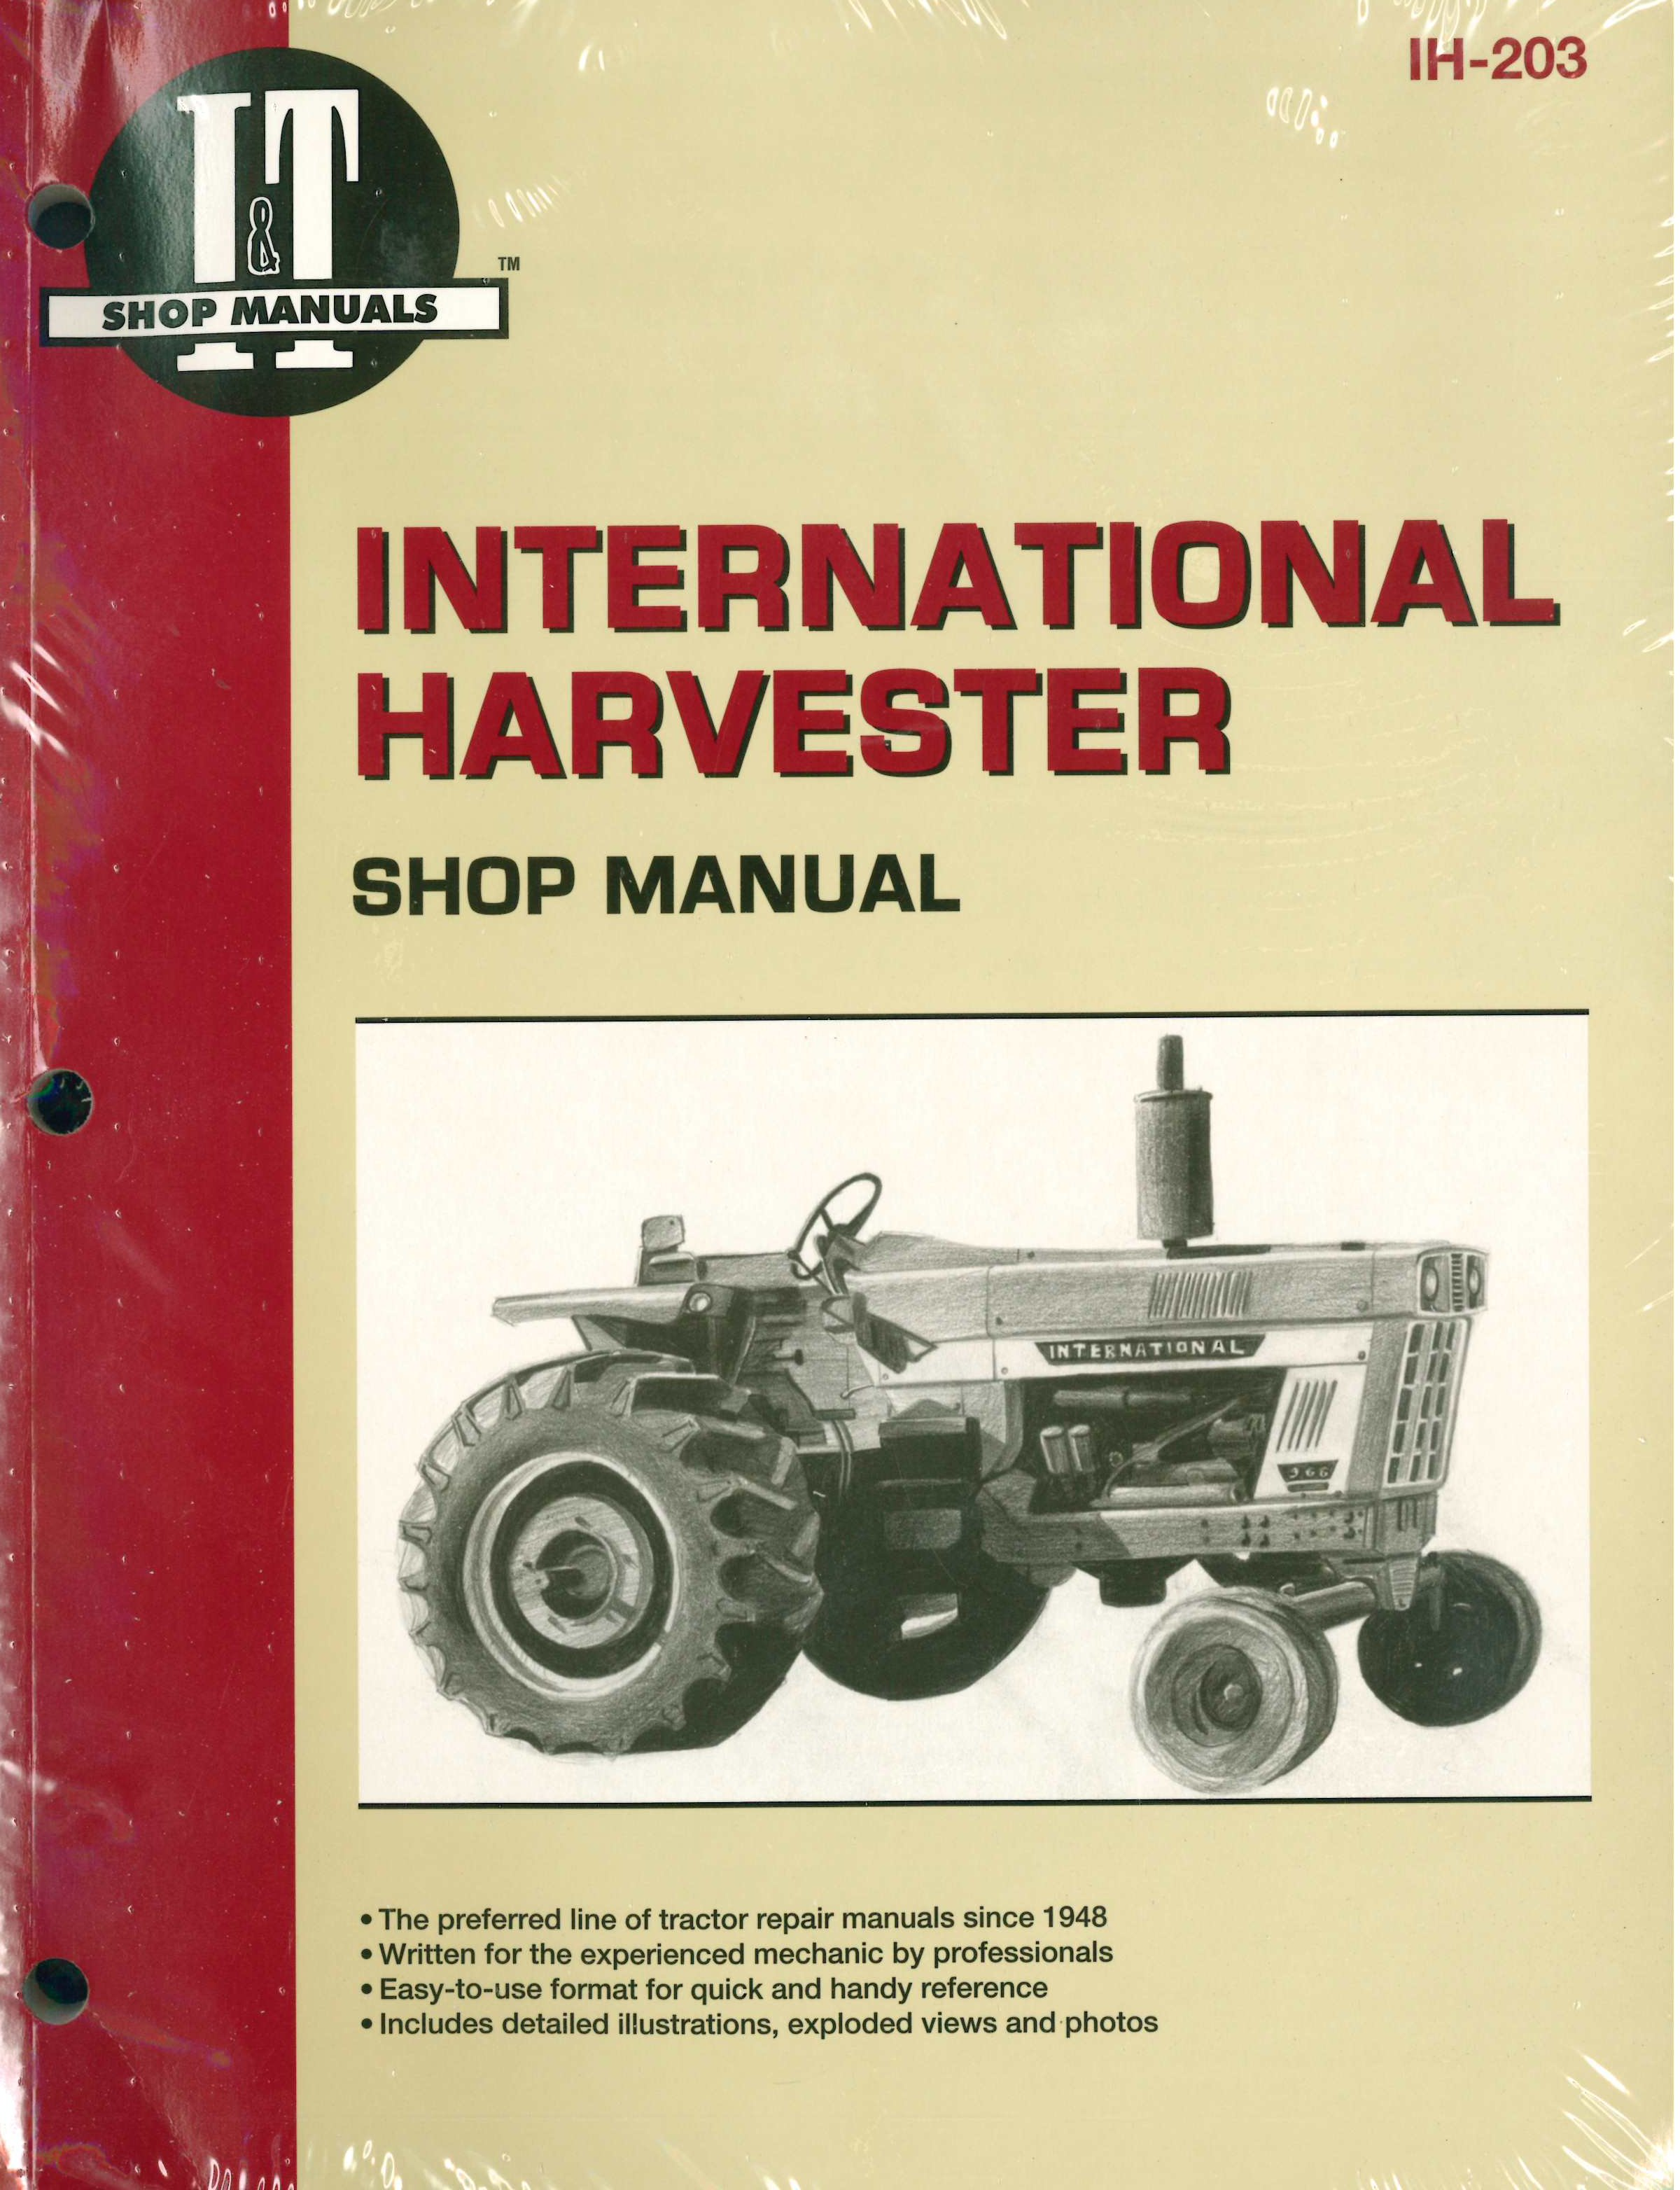 international harvester tractor service manual  international harvester tractor service manual 454 464 484 574 584 674 766 786 826 886 966 986 1026 1066 1086